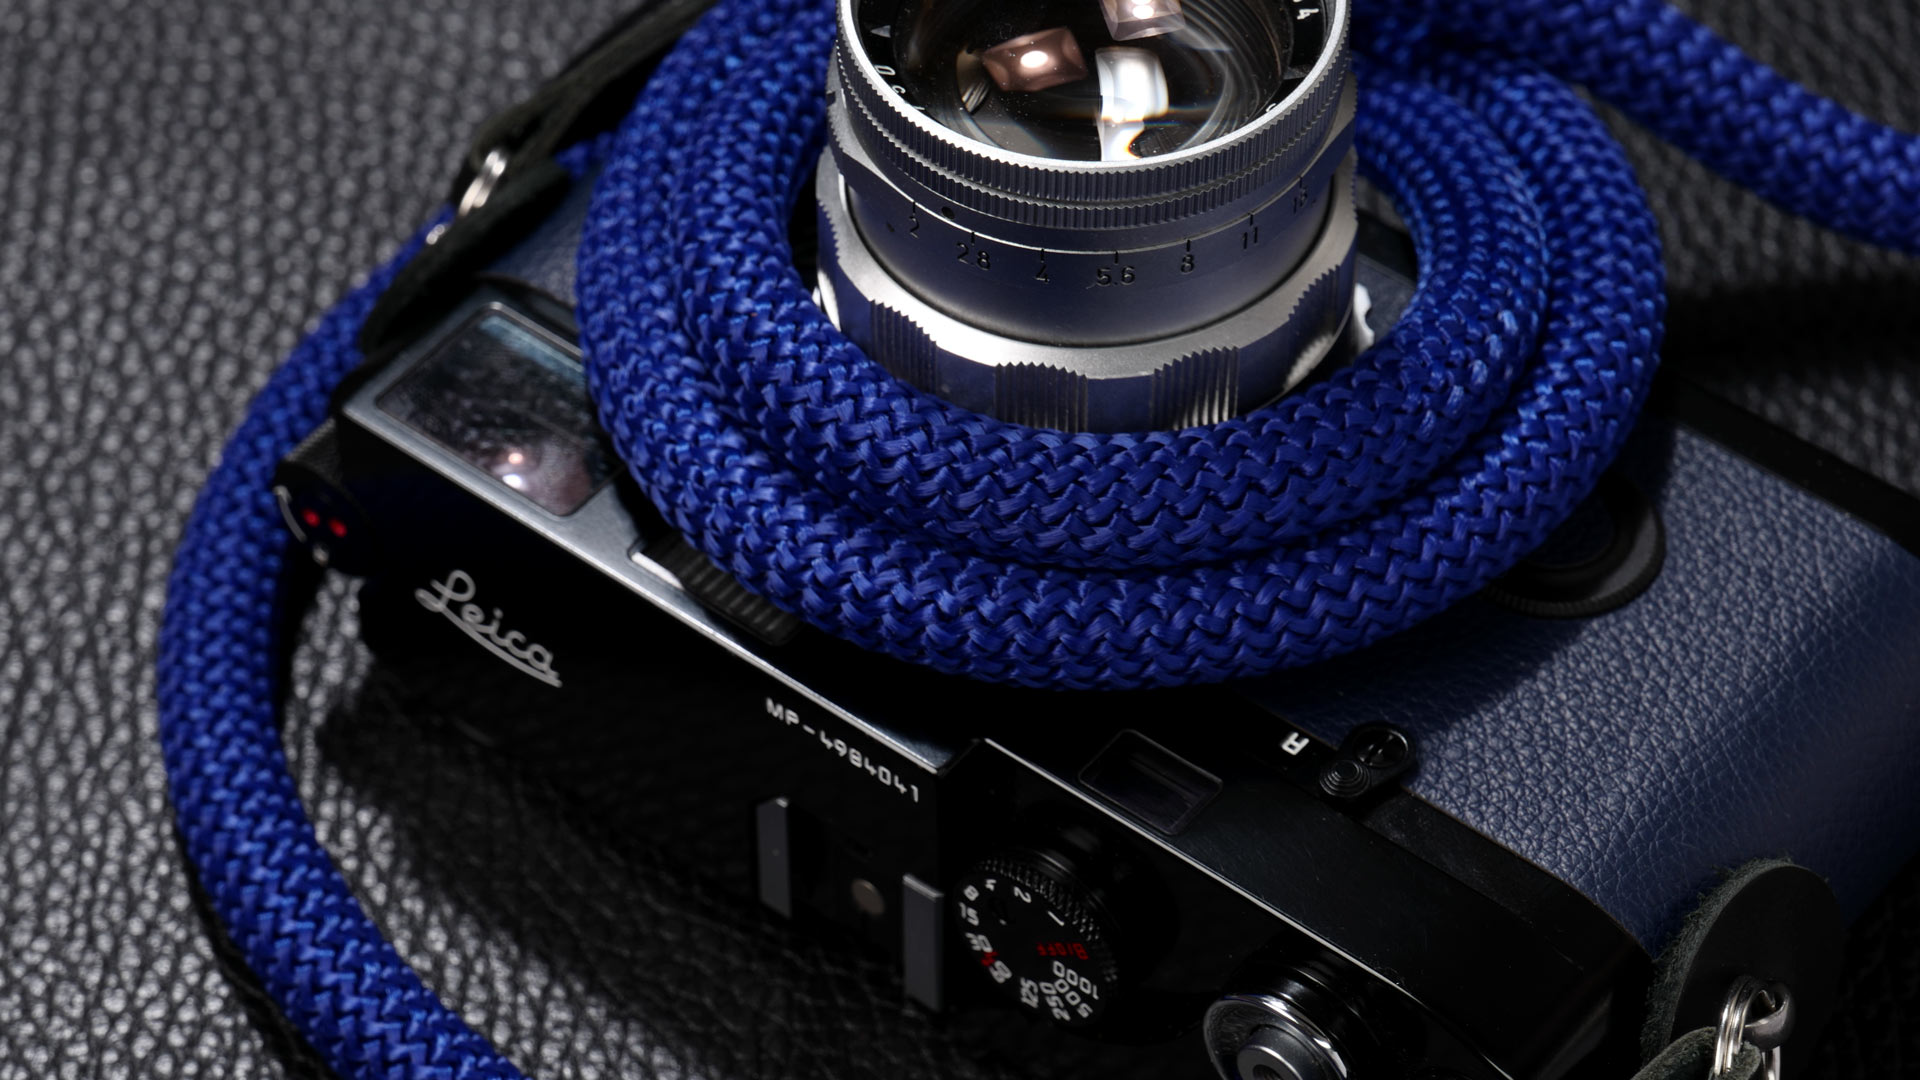 snake strap, rope strap, classic strap, rope camera strap, handmade leather camera strap, leica camera strap, mirrorless camera strap, handmade camera strap, dslr camera strap, blue camera strap